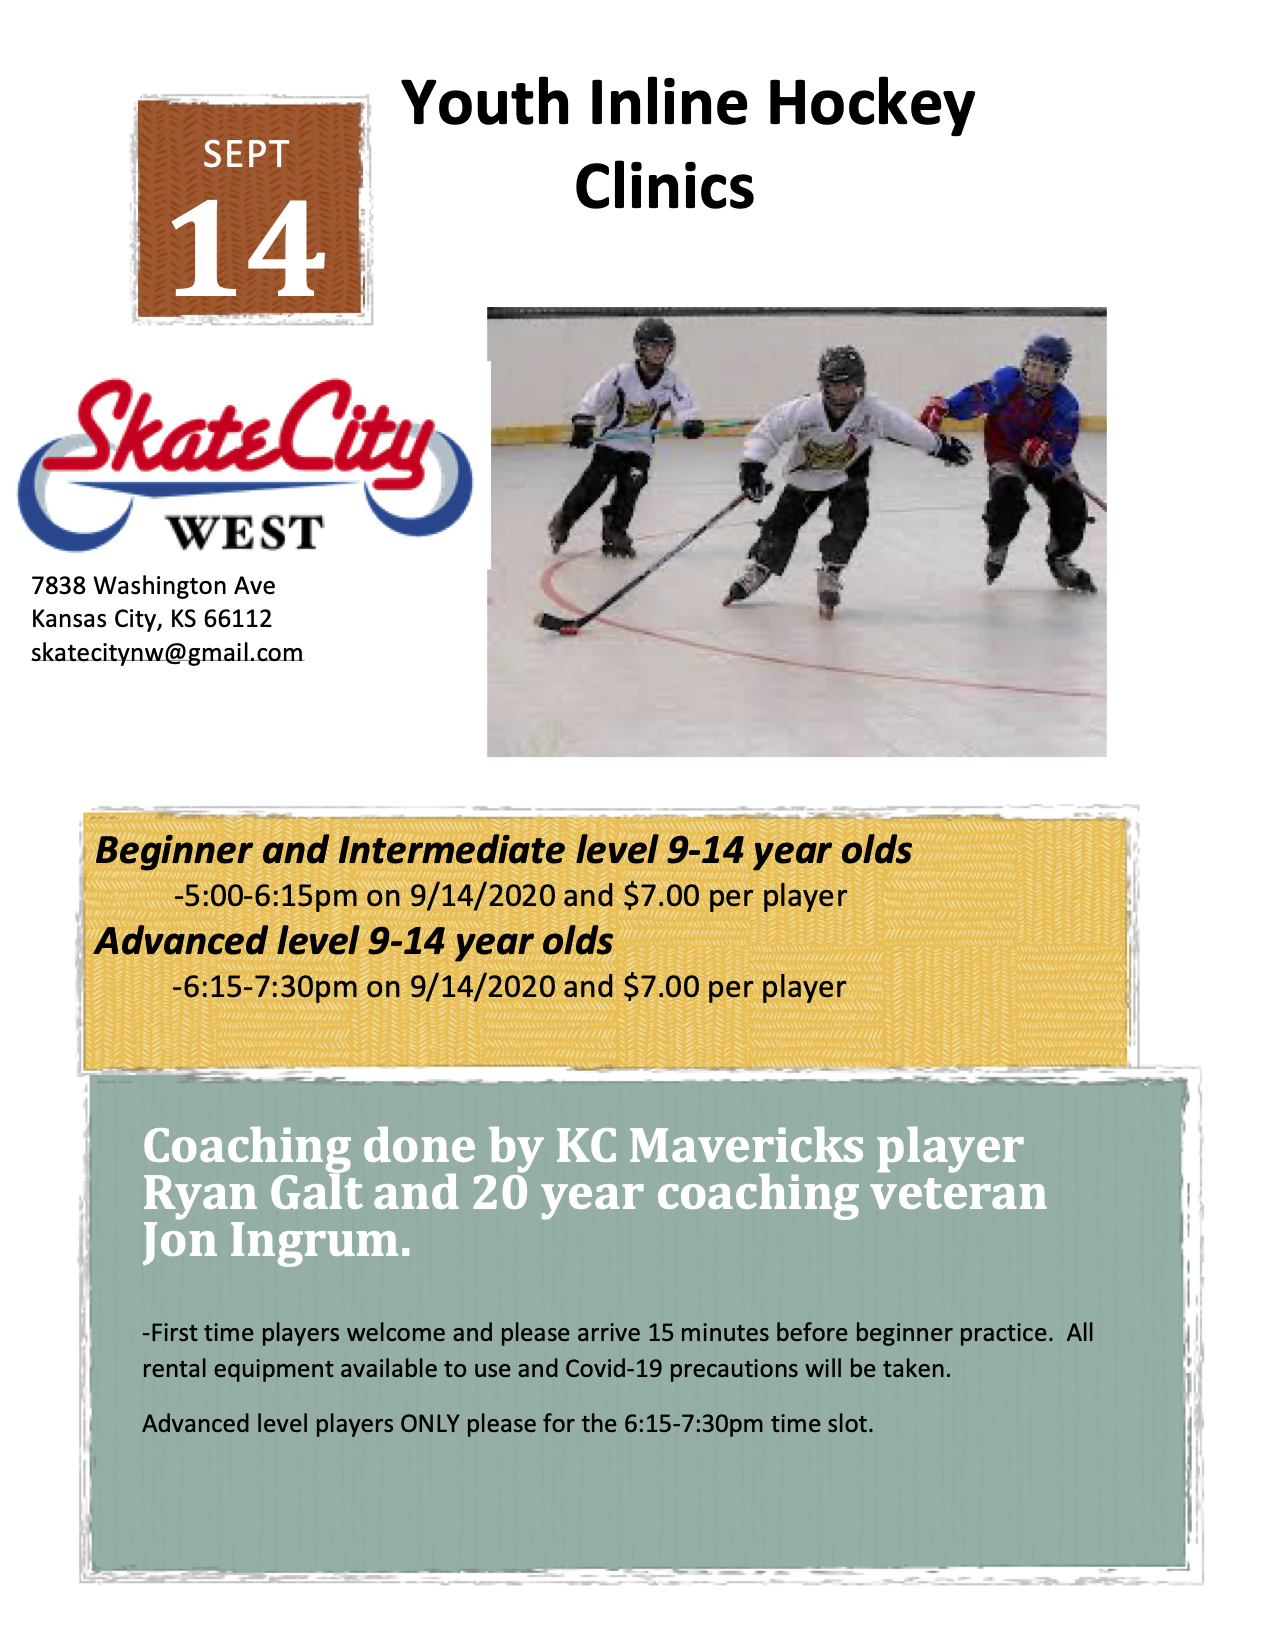 Youth Hockey Clinics main copy